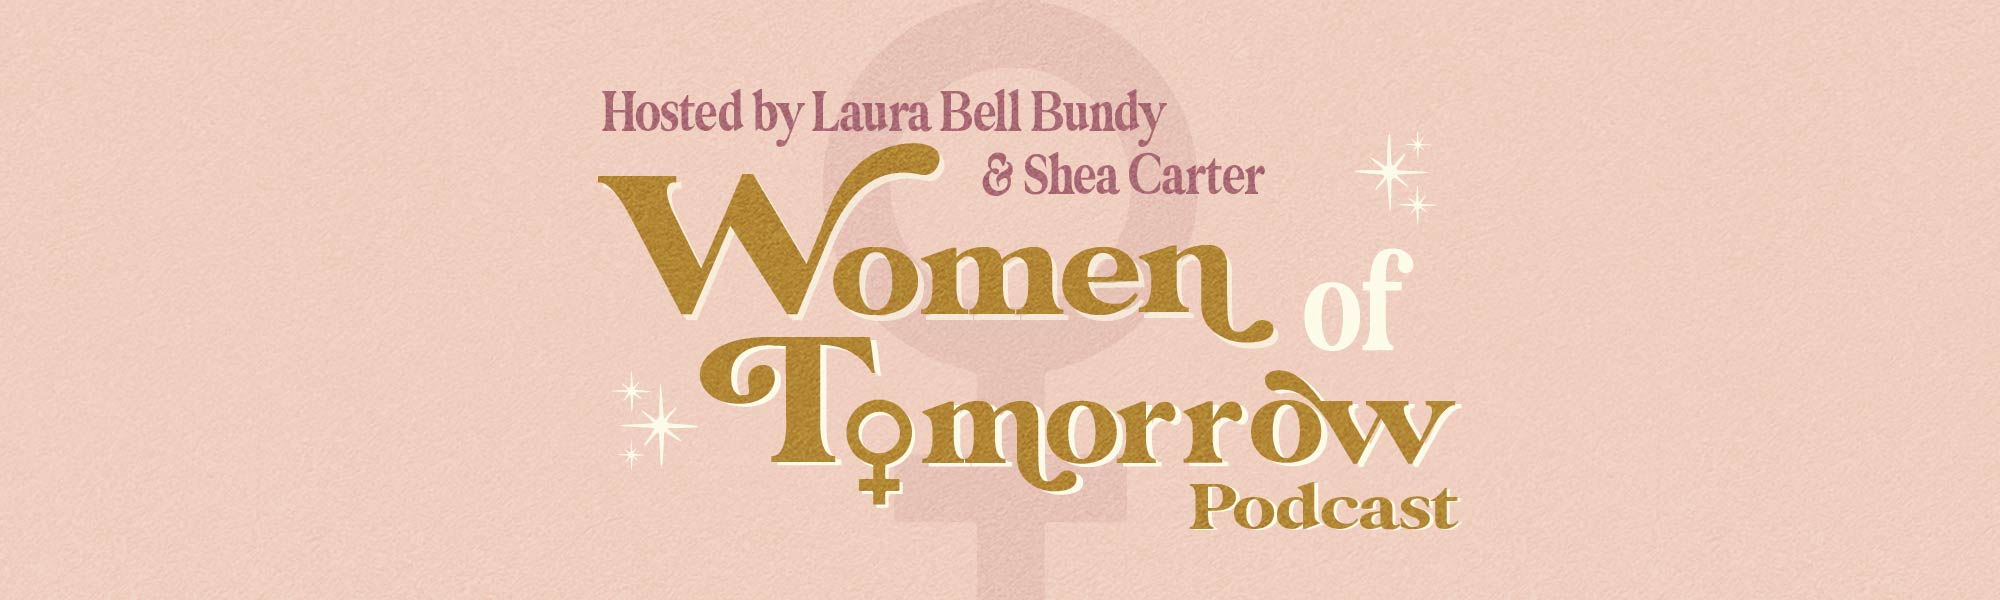 Women of Tomorrow with Laura Bell Bundy